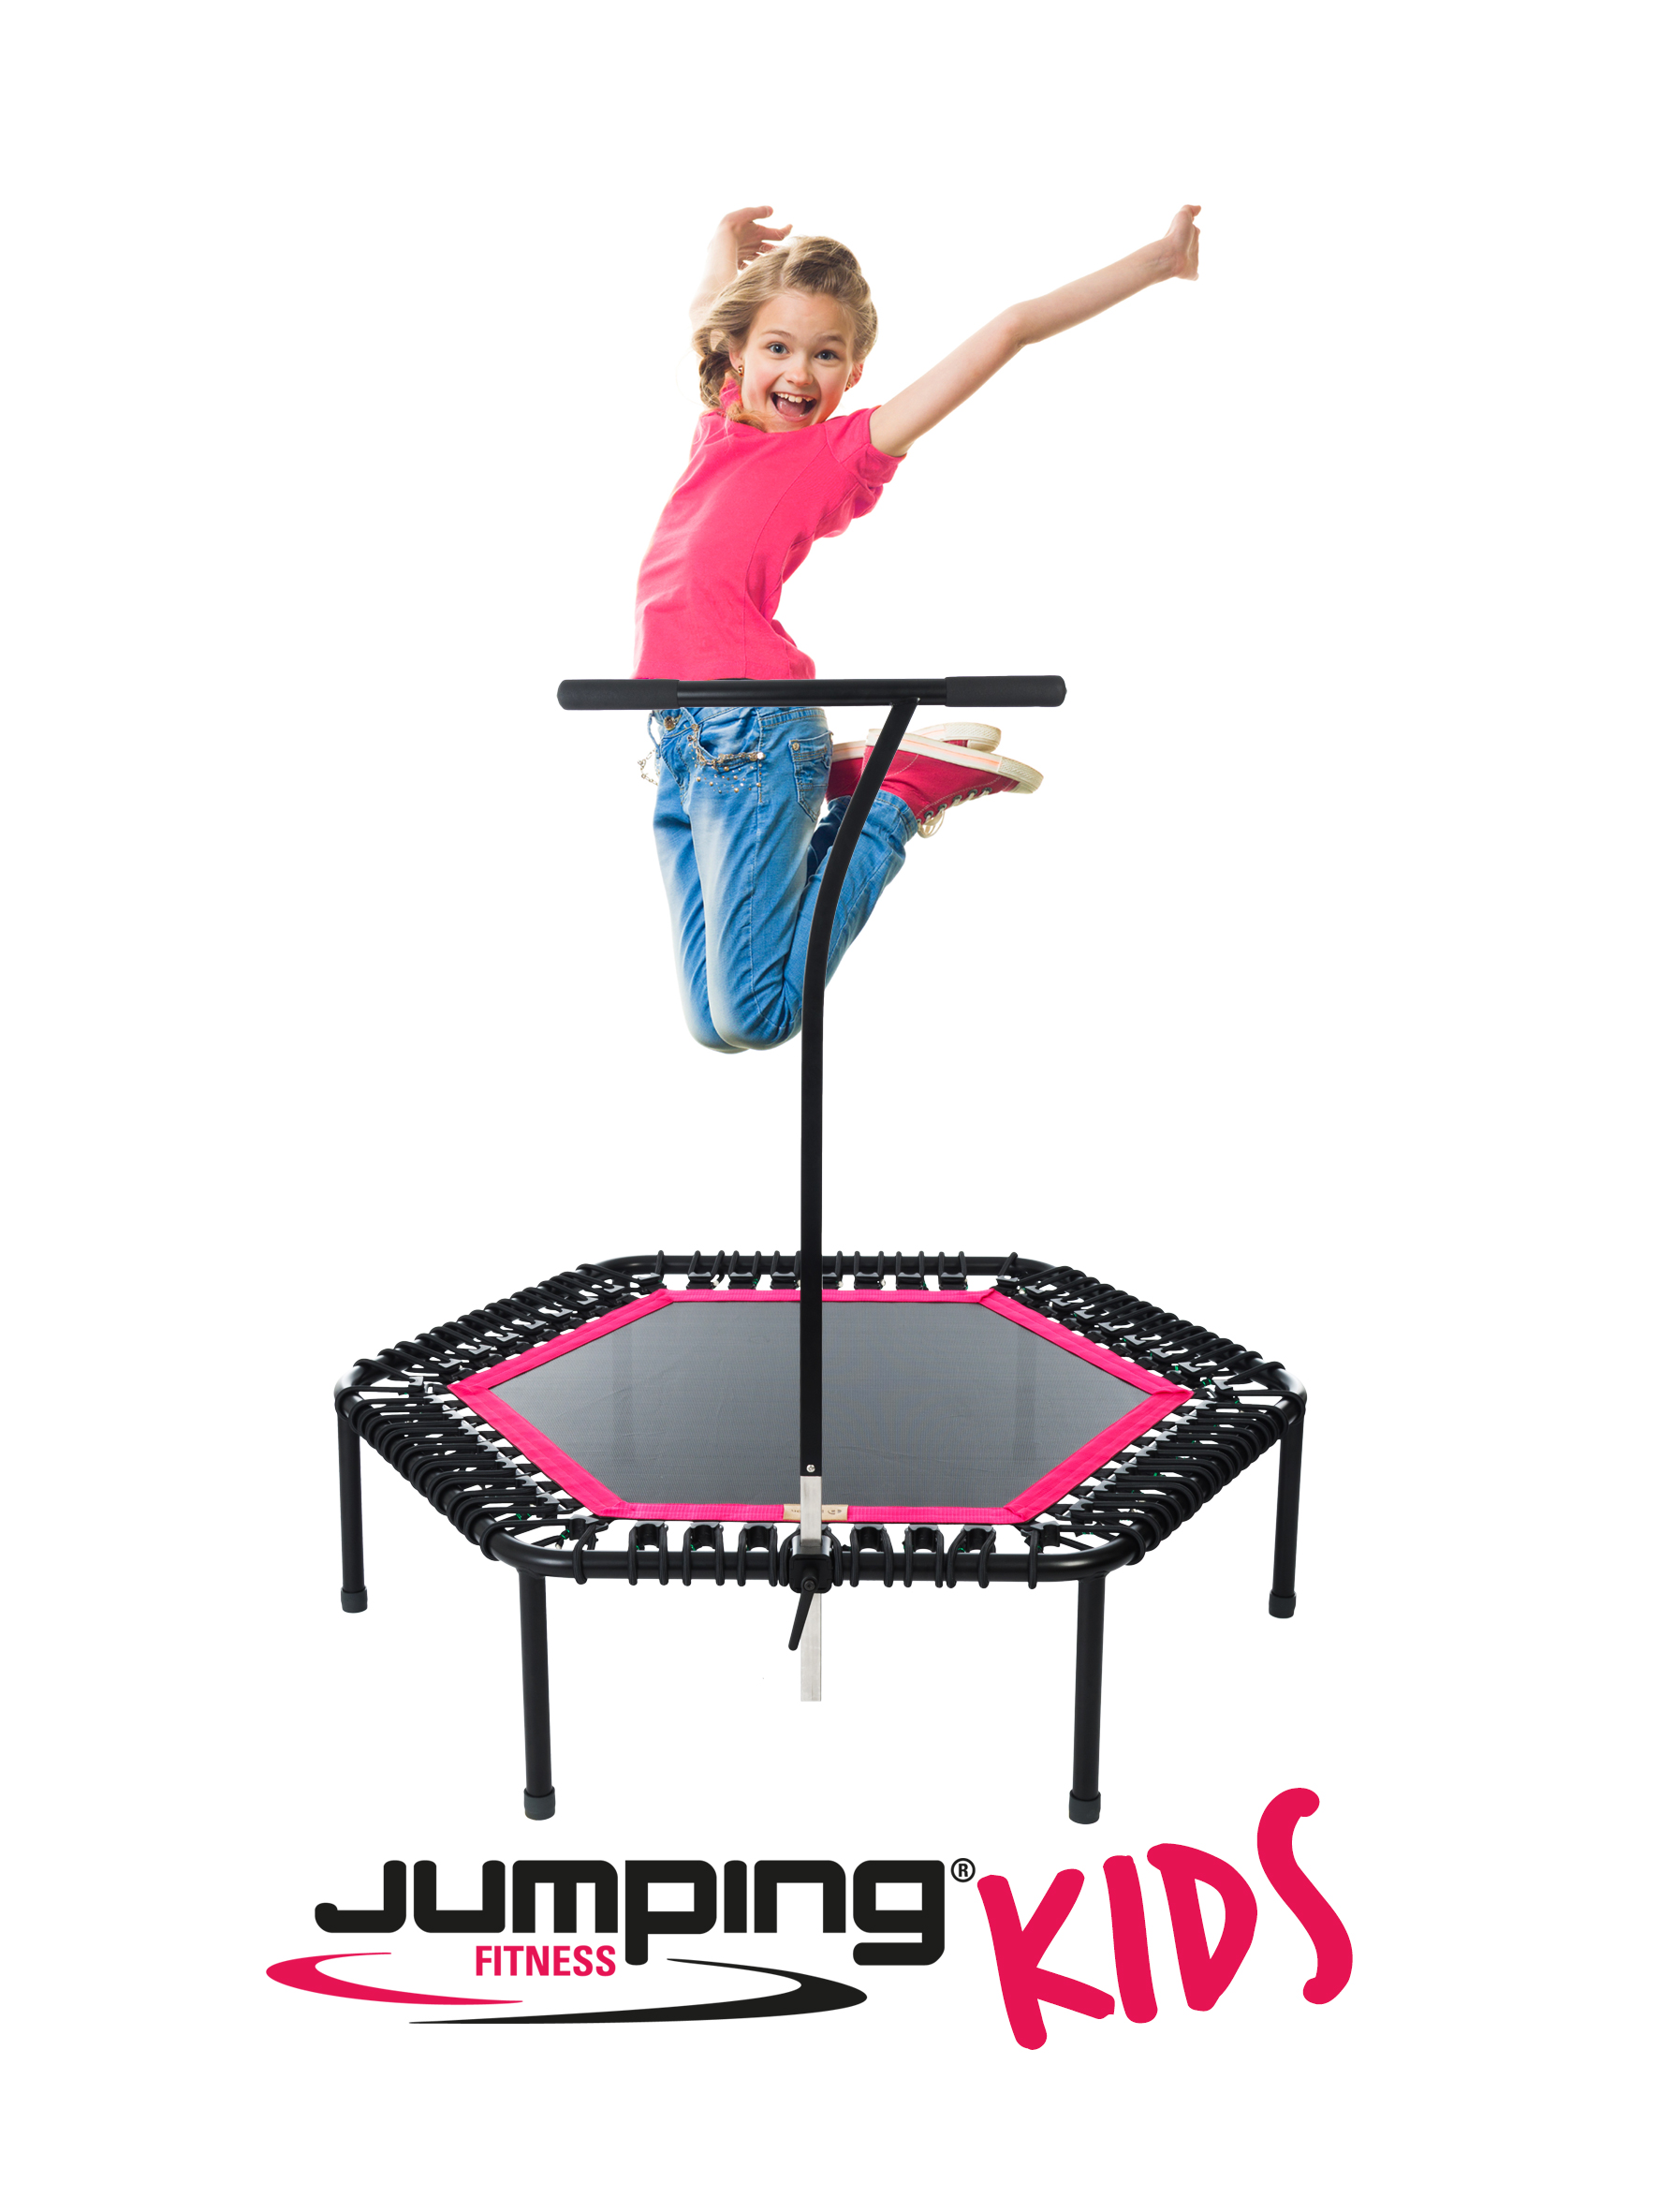 trainers | Jumping Fitness – International